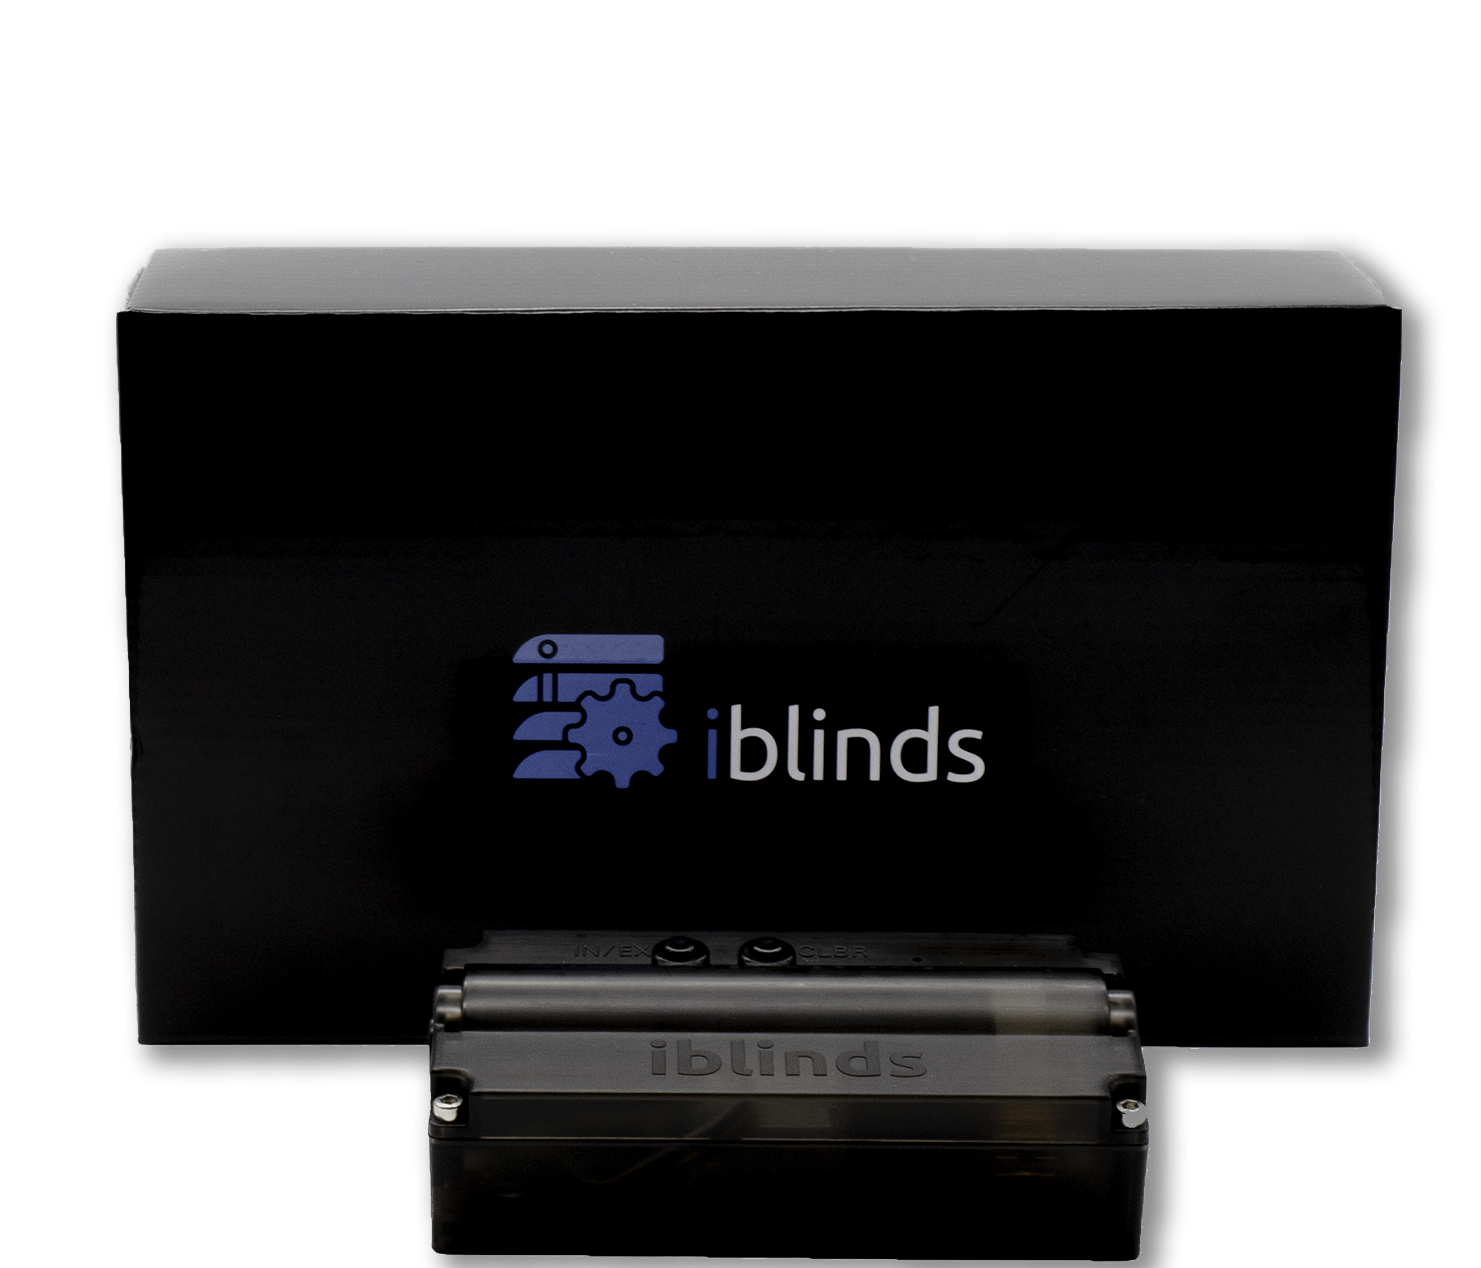 iblinds v3 and box